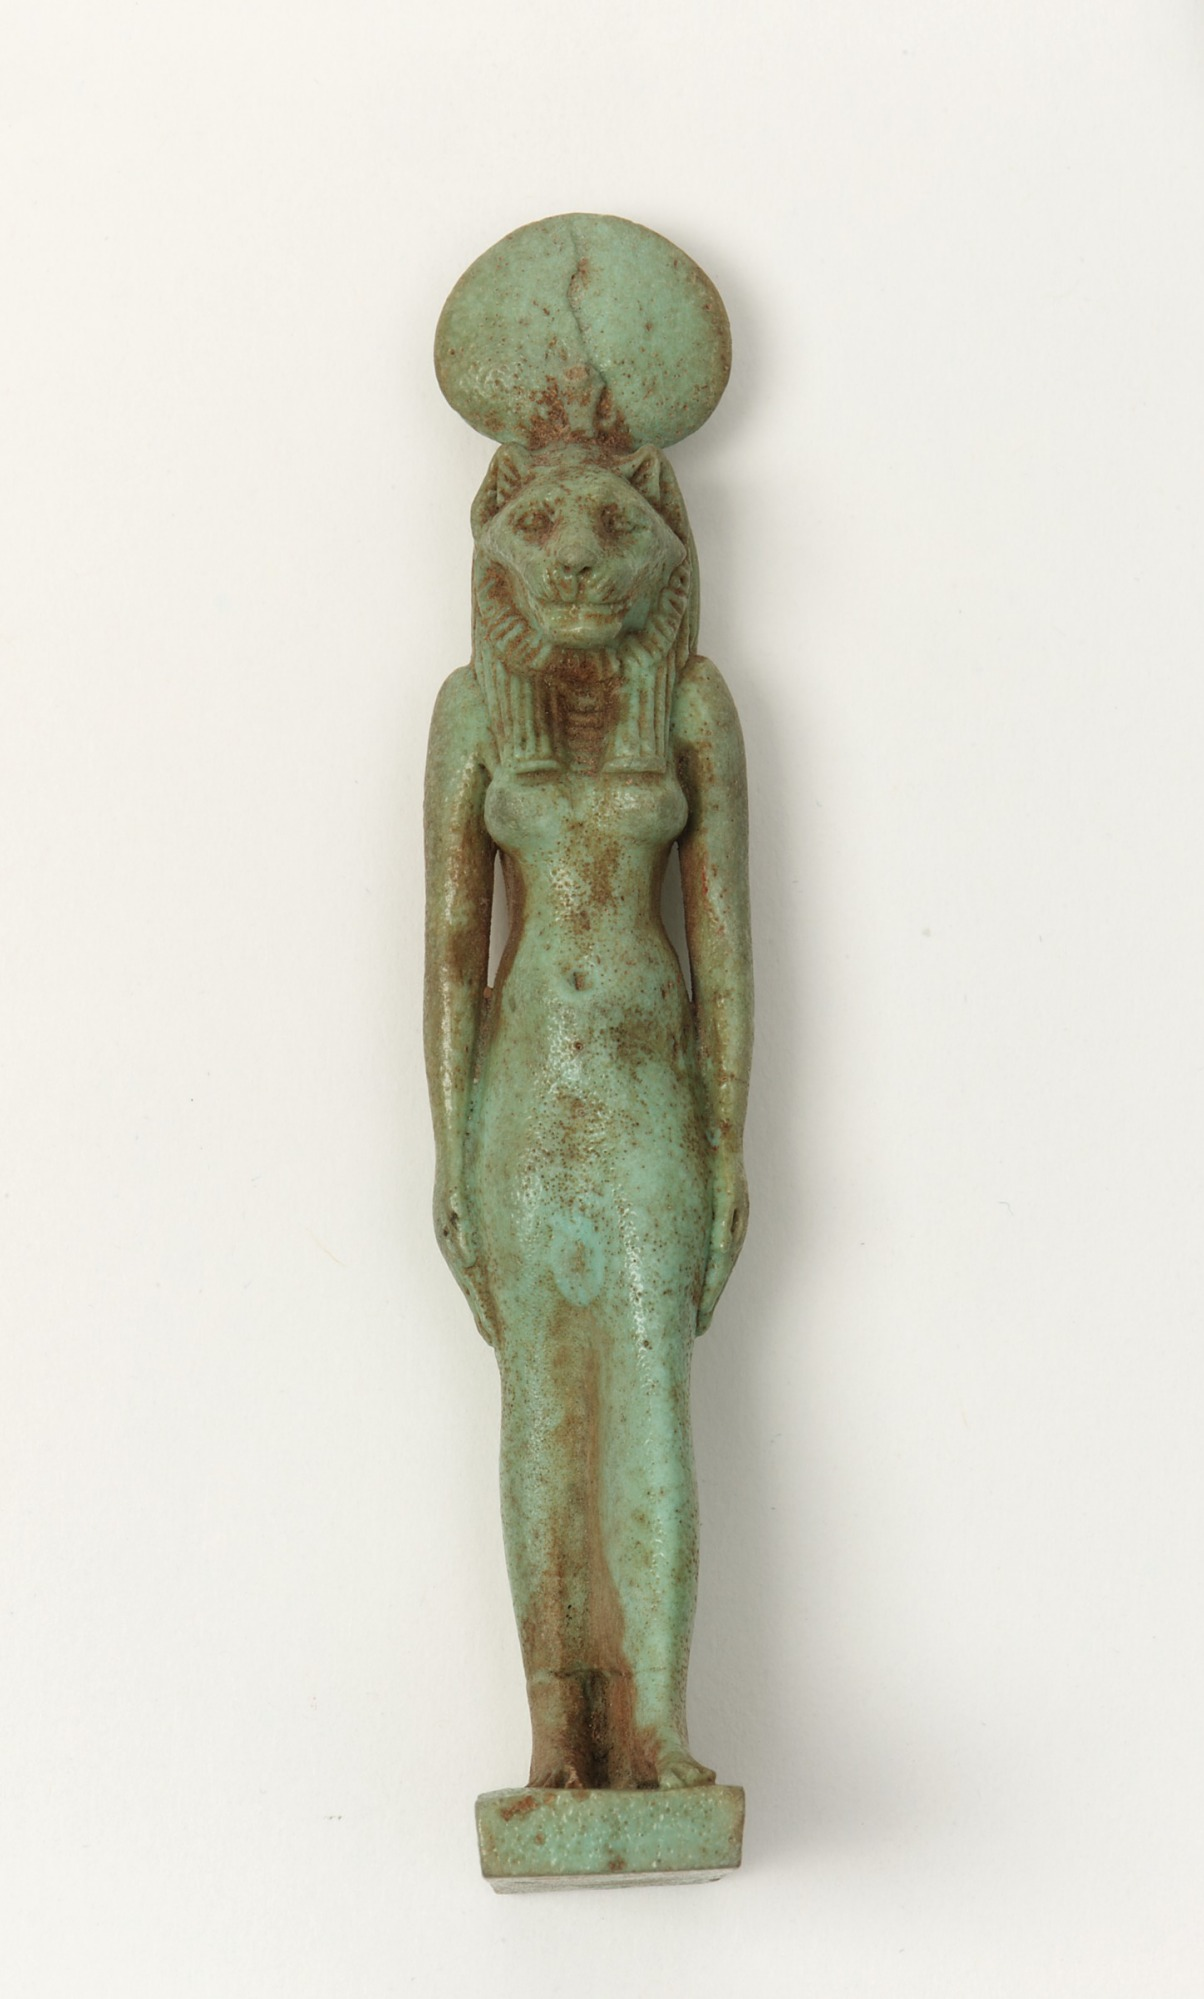 Amulet of a goddess, perhaps Sakhmet